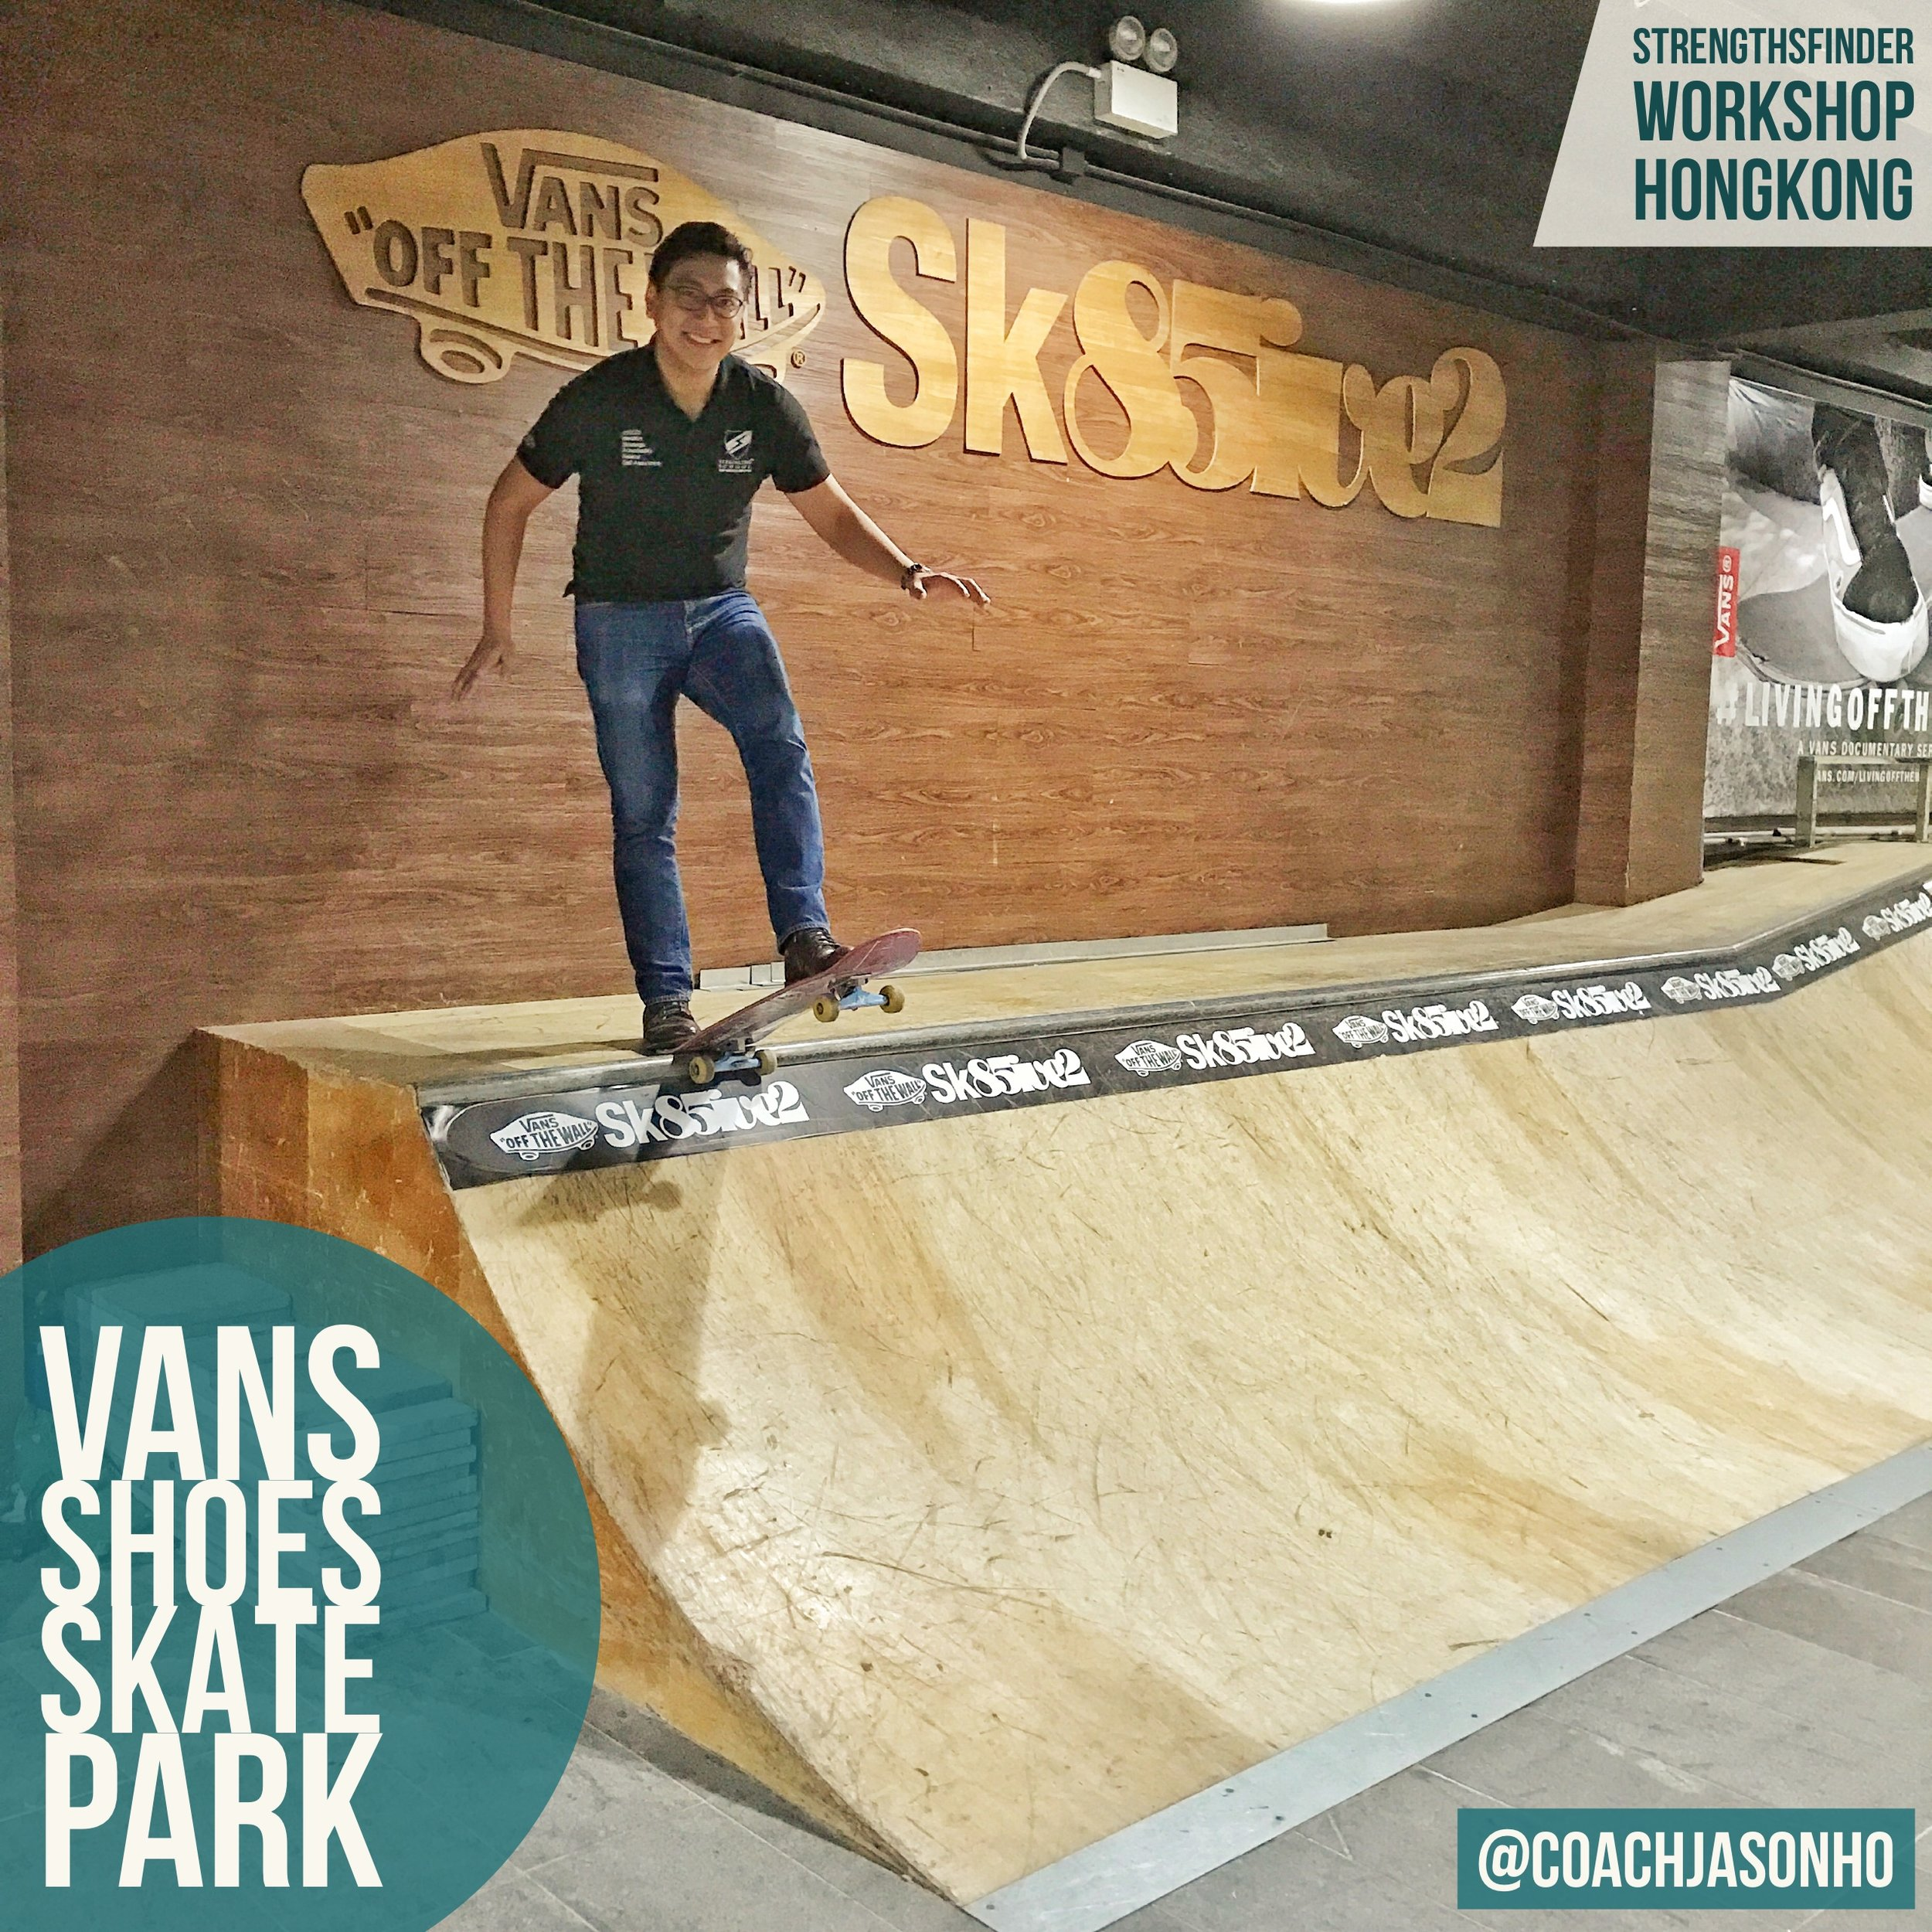 Perks of doing a StrengthsFinder workshop for VANS in their indoor SkatePark HongKong! Heading back to Singapore now